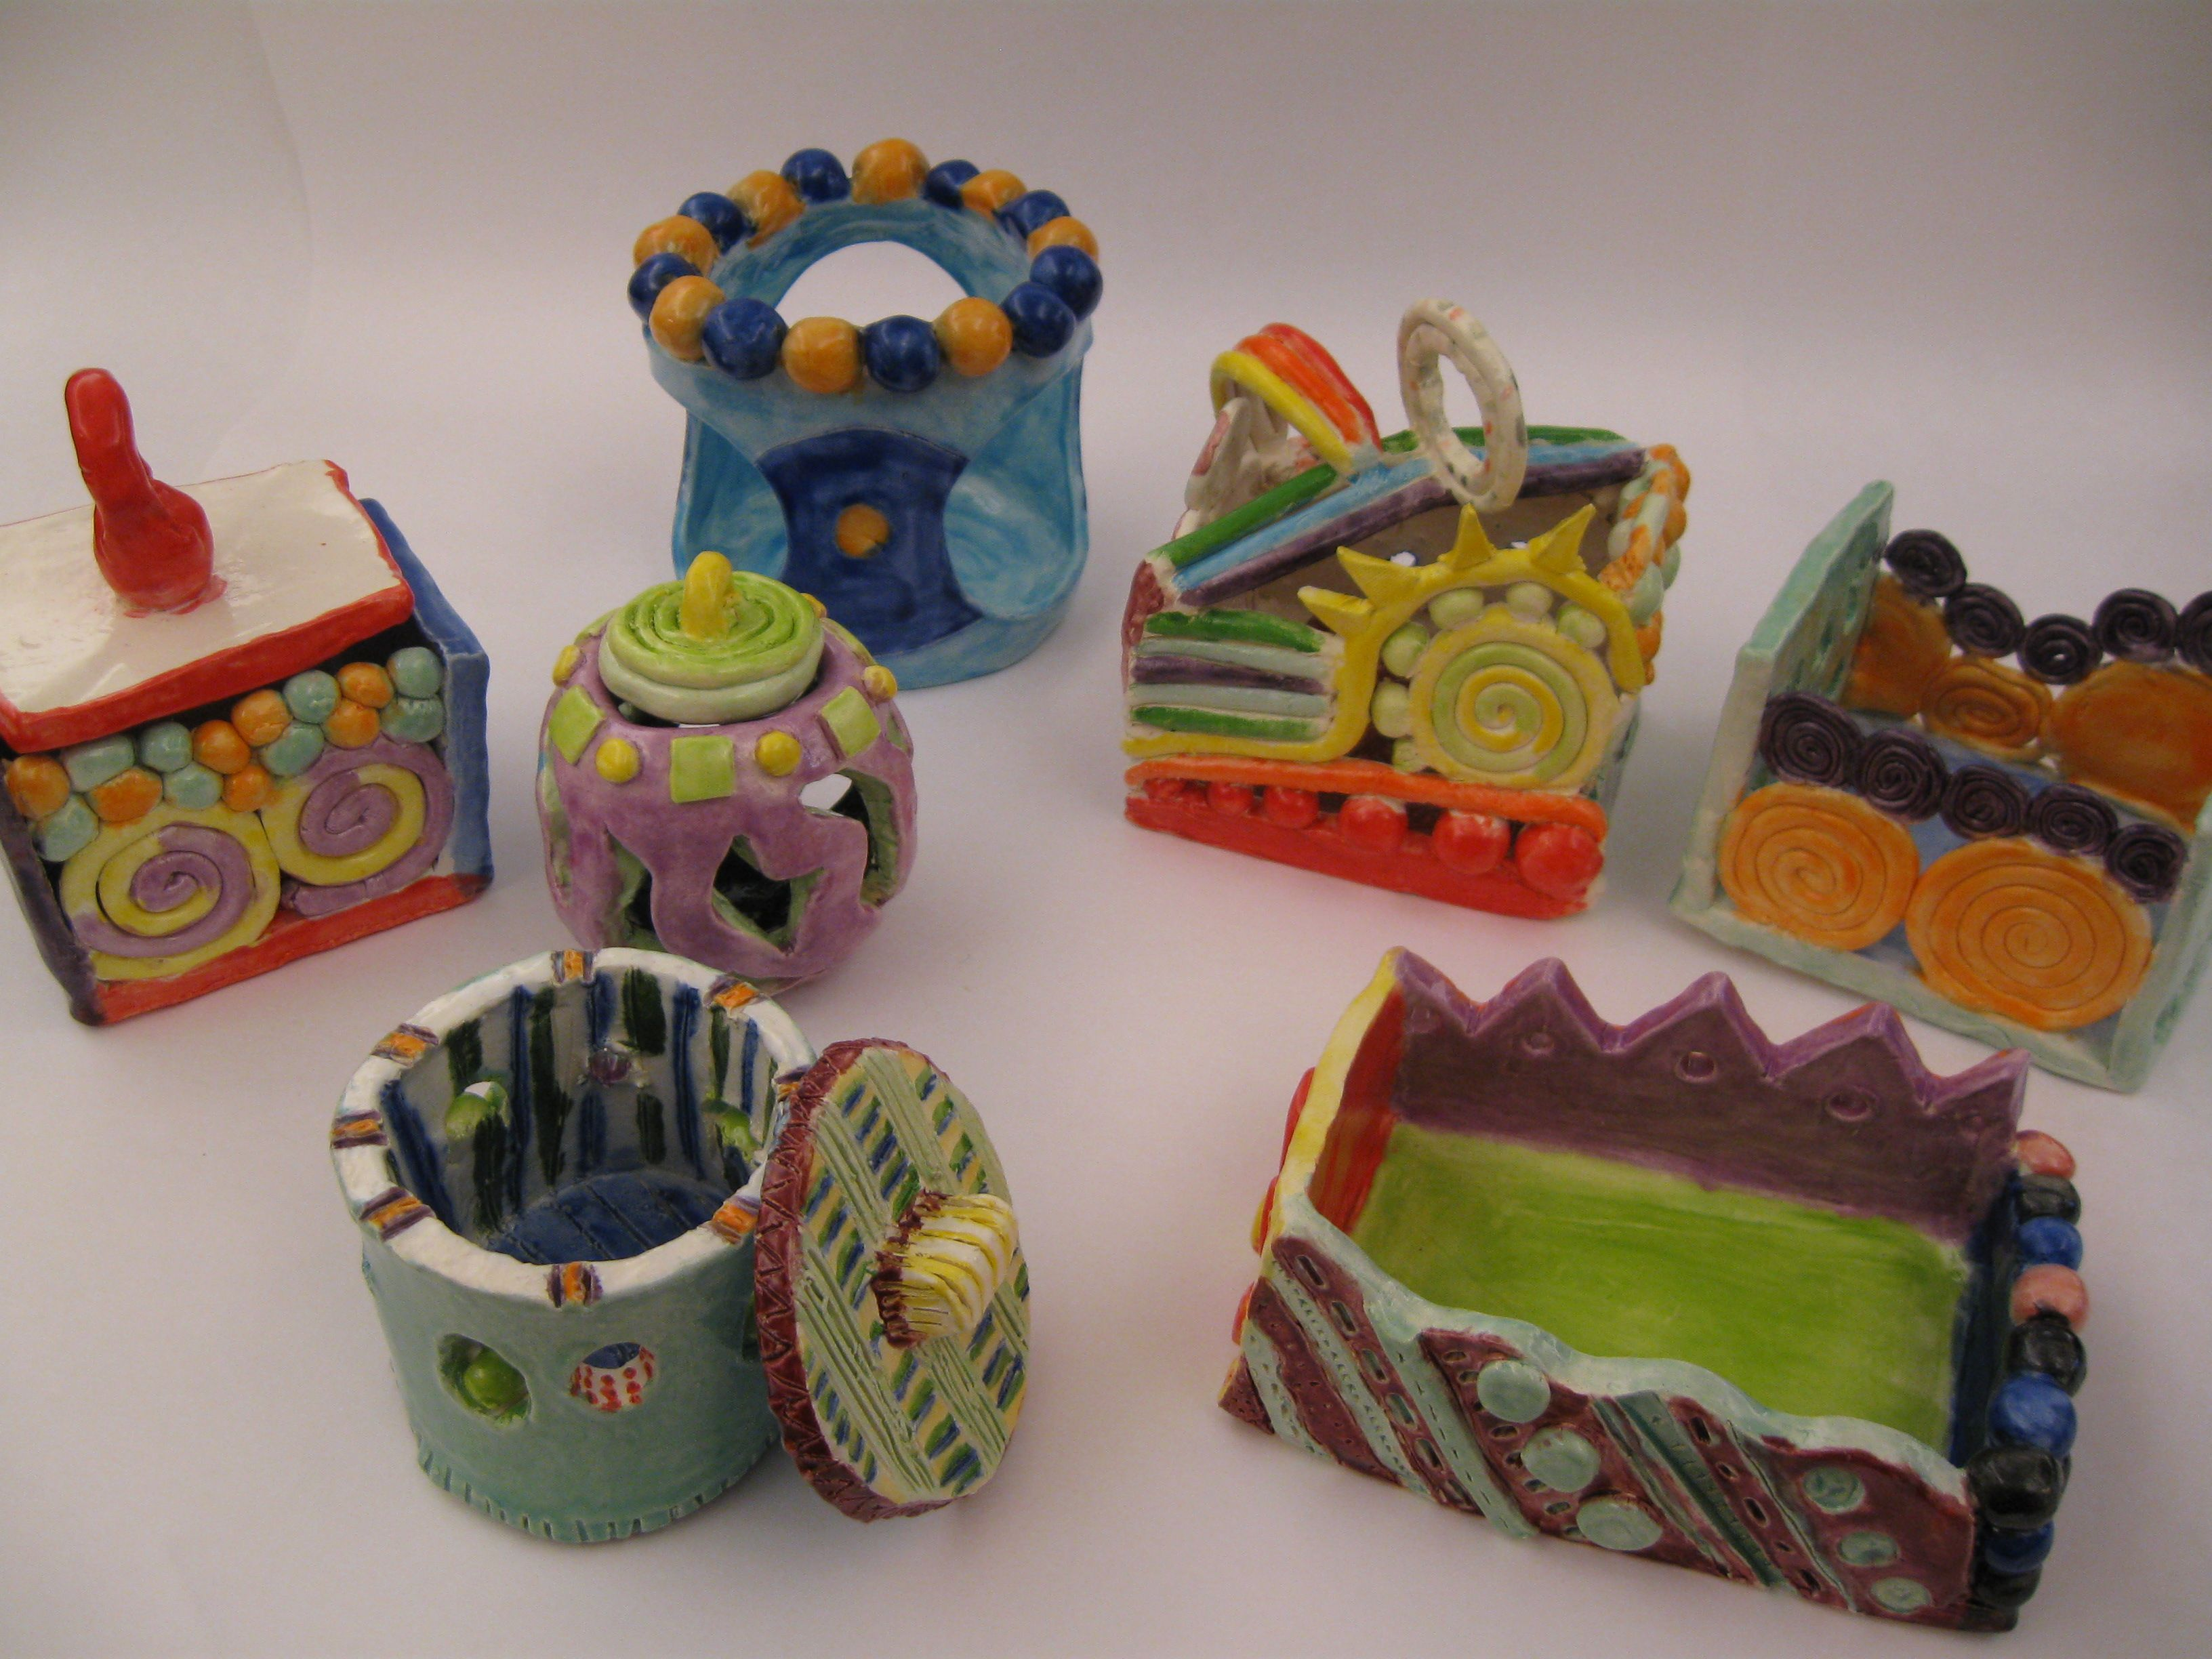 clay projects for middle school This may be the most relaxing clay project you'll ever do my students loved it so much, they asked to do it again credit for this awesome project goes to my daughter's high school ceramics teacher, mr emery.